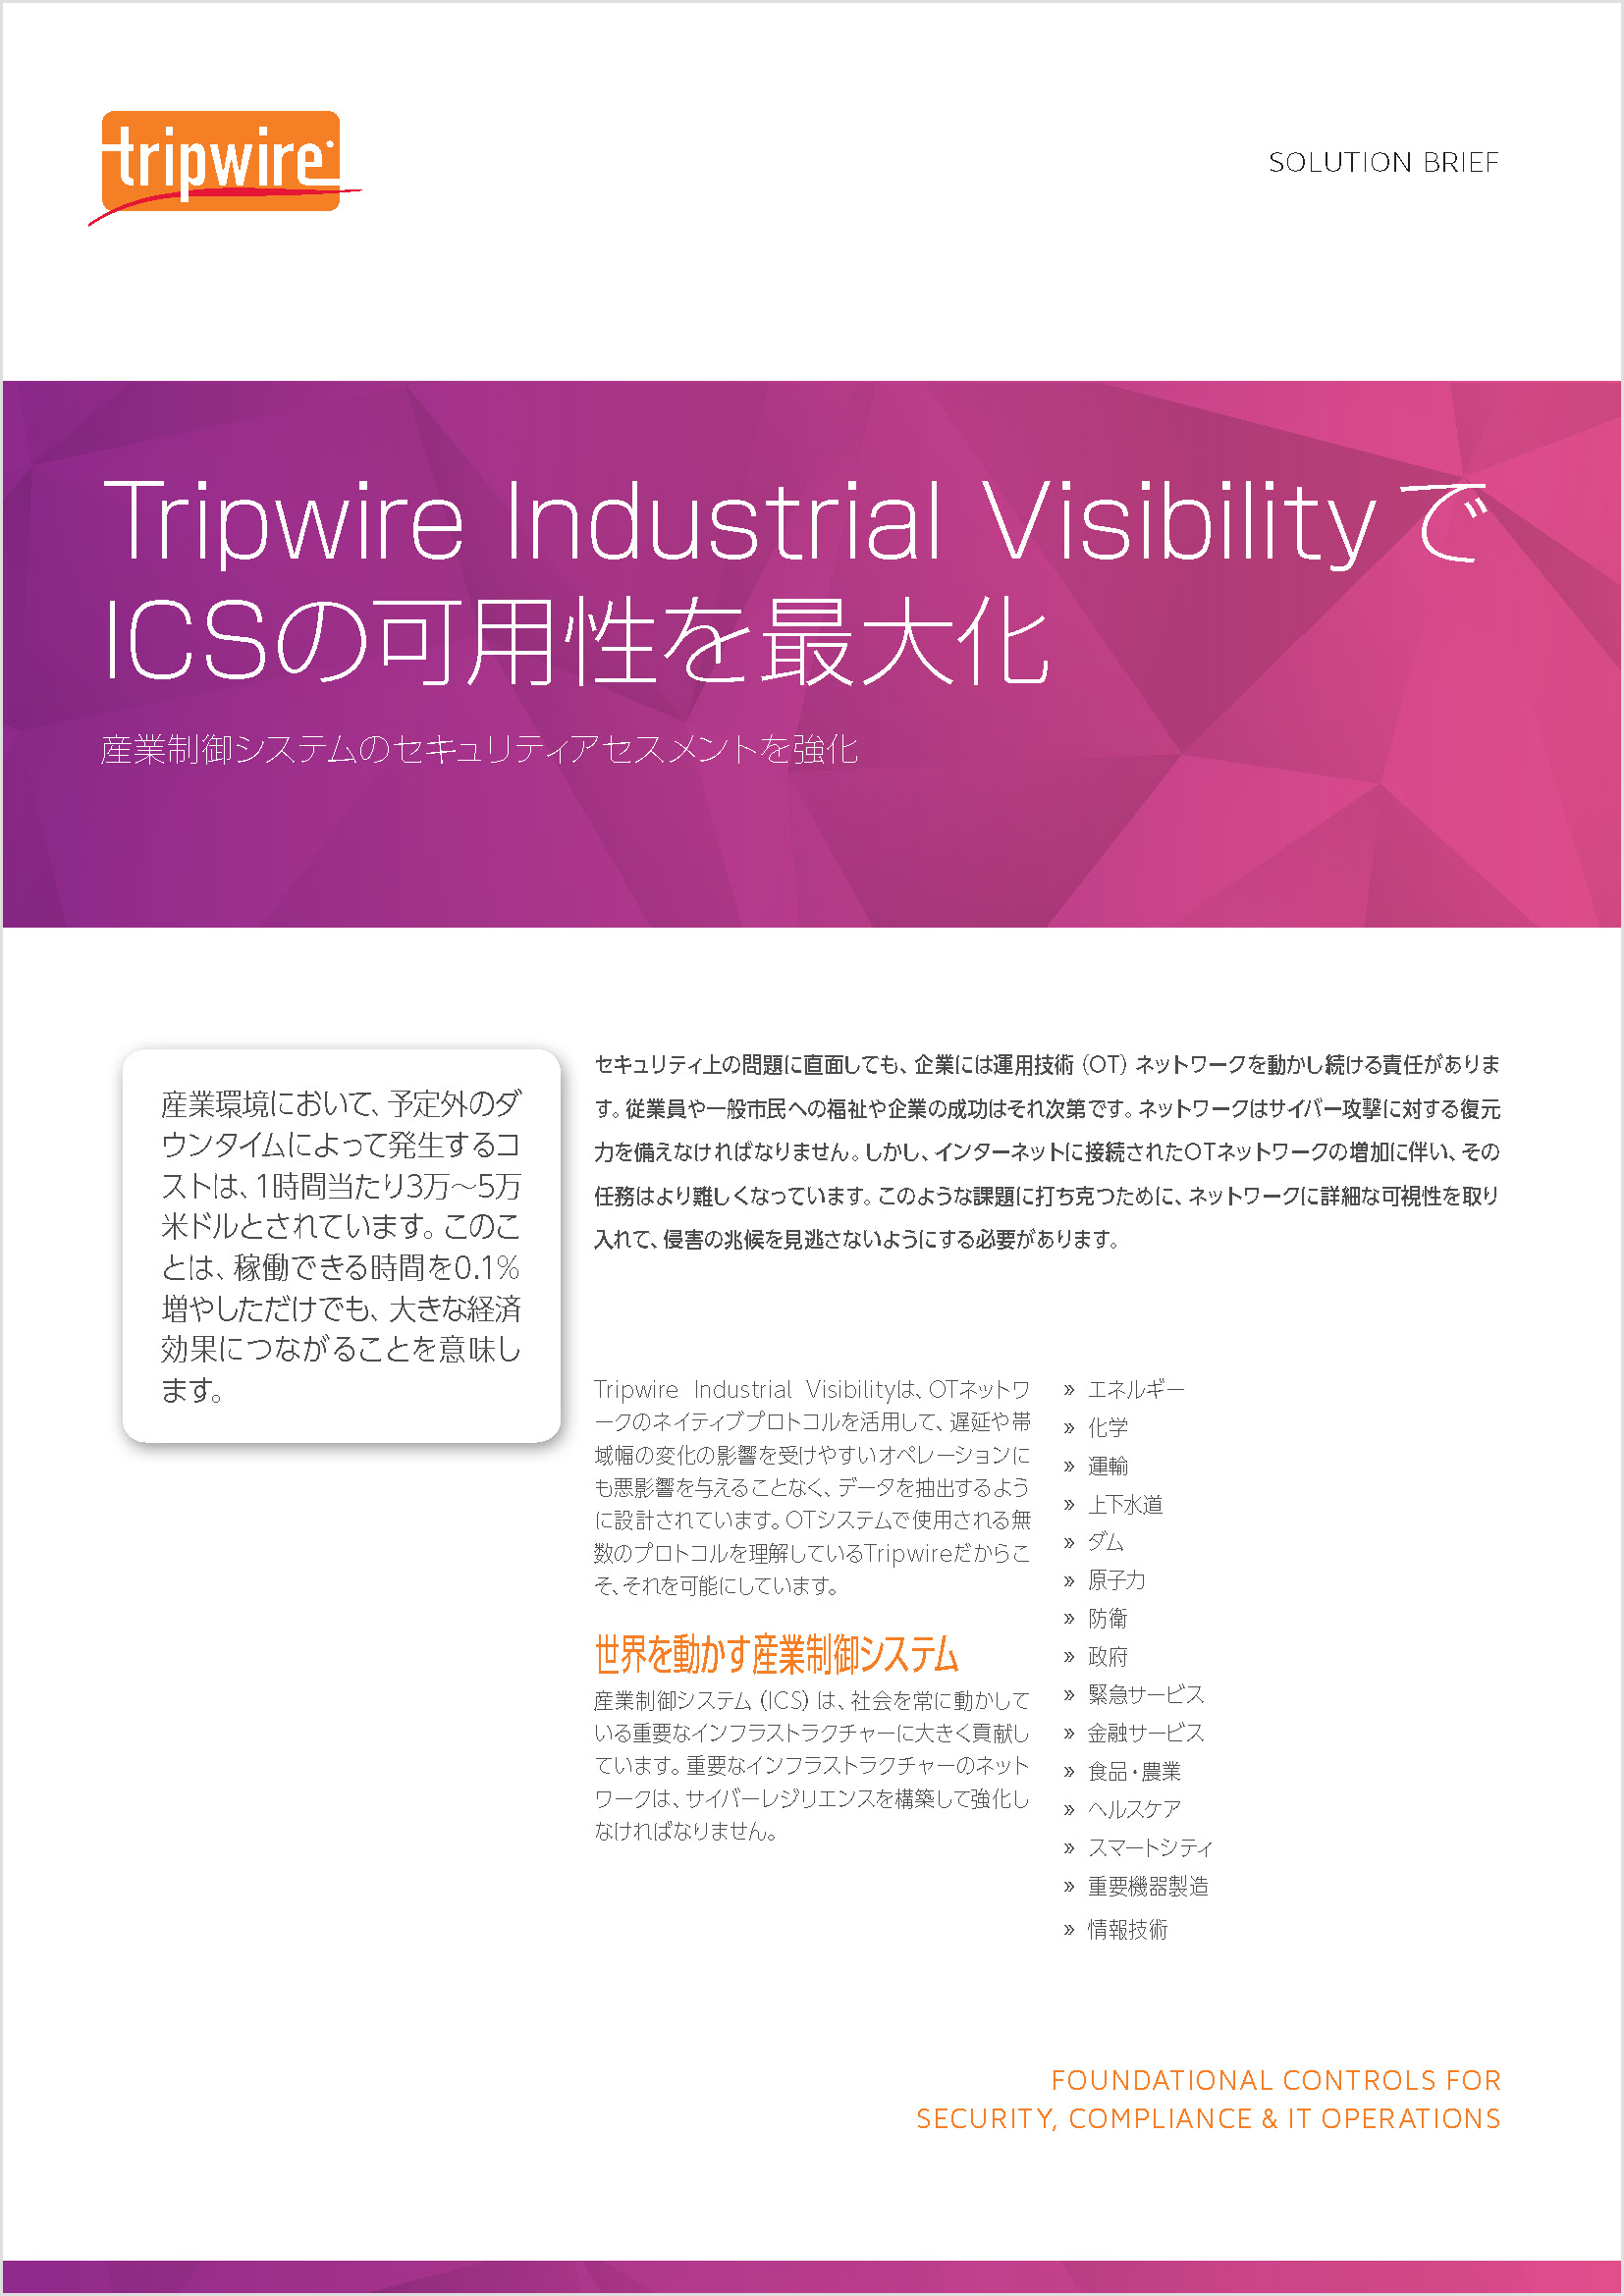 Tripwire Industrial VisibilityでICSの可用性を最大化